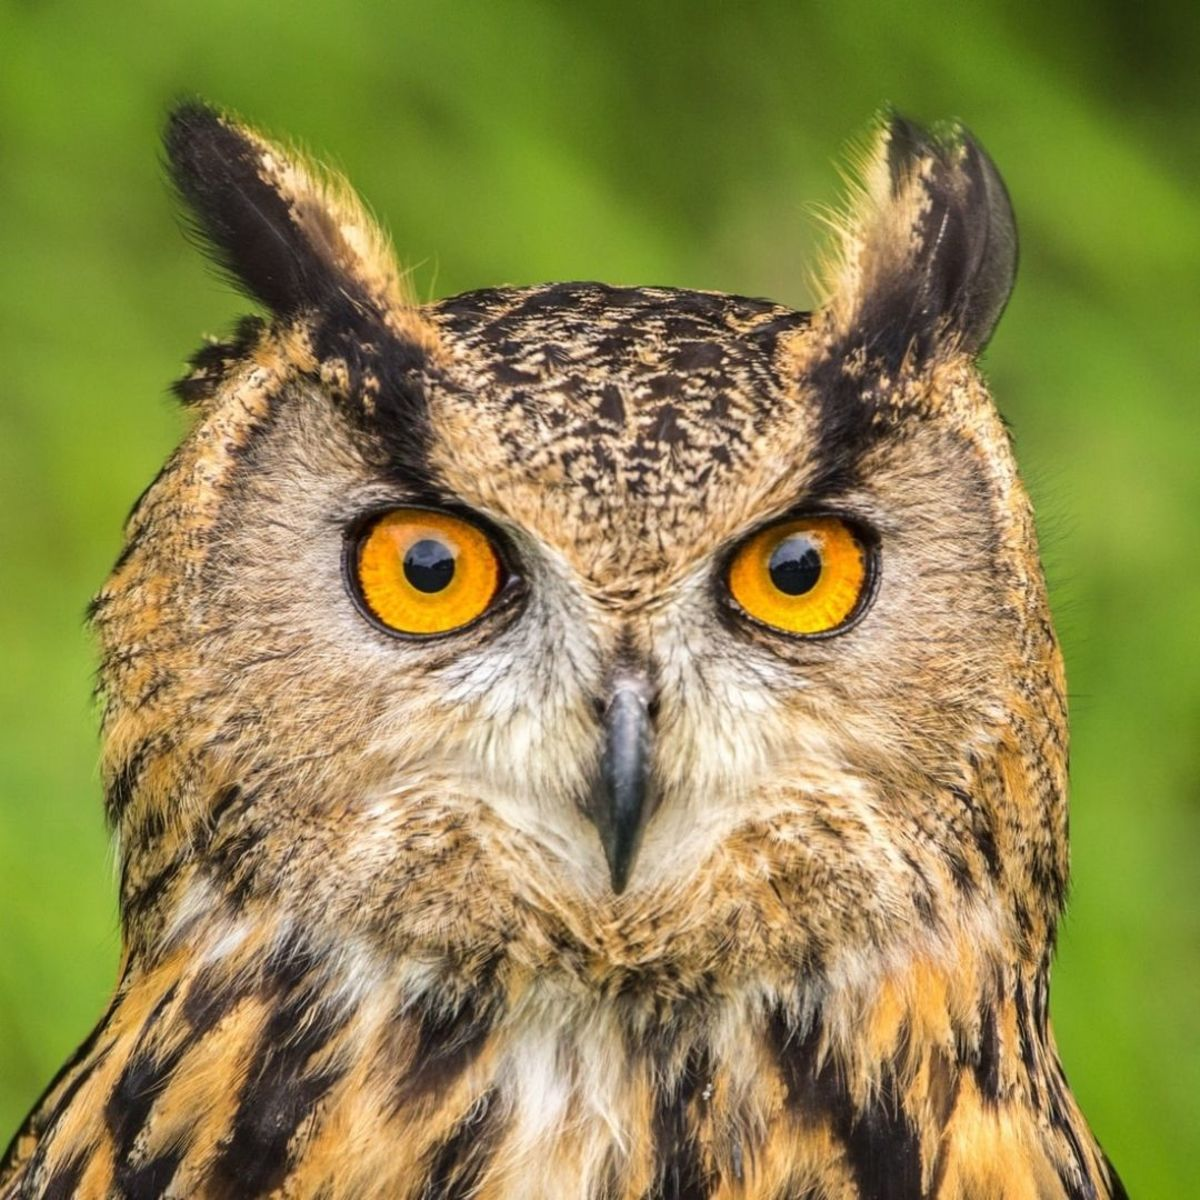 People who are interested in this species—or other owls—might want to consider practicing falconry techniques such as teaching them to fly freely and returning to their owner.